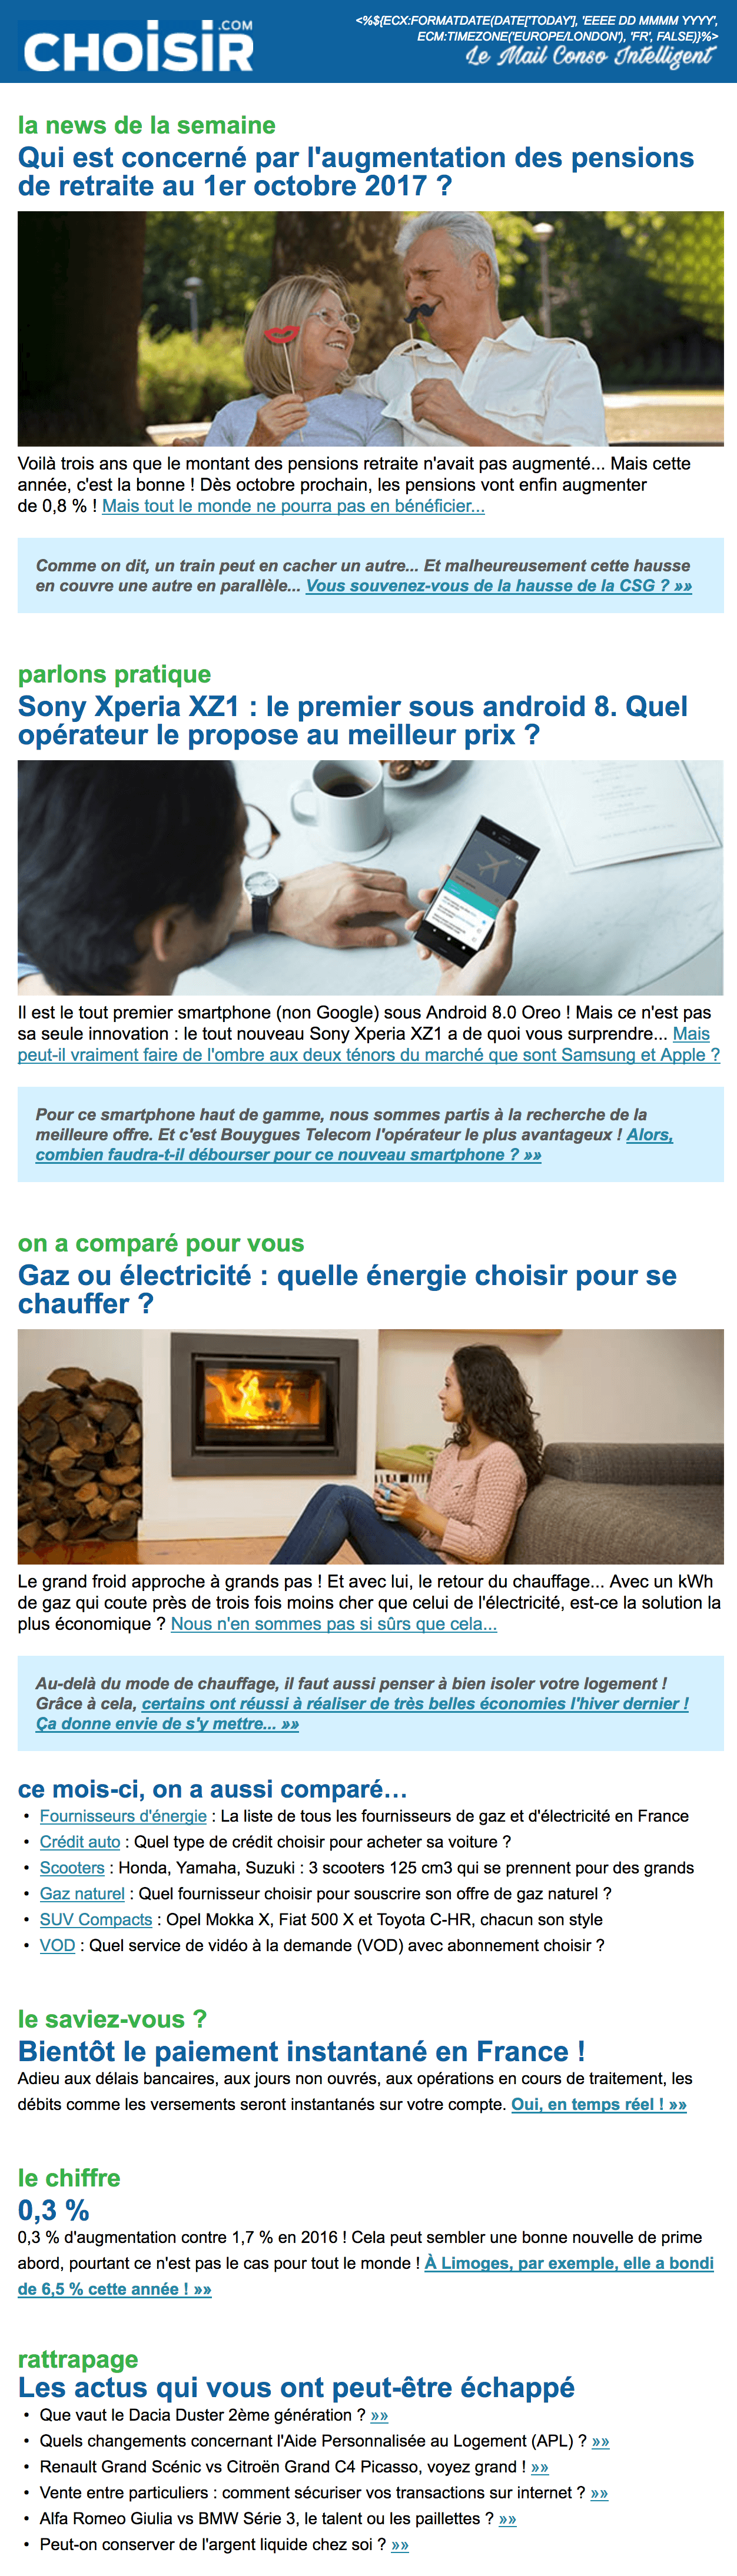 Choisir - Le Mail Conso Intelligent